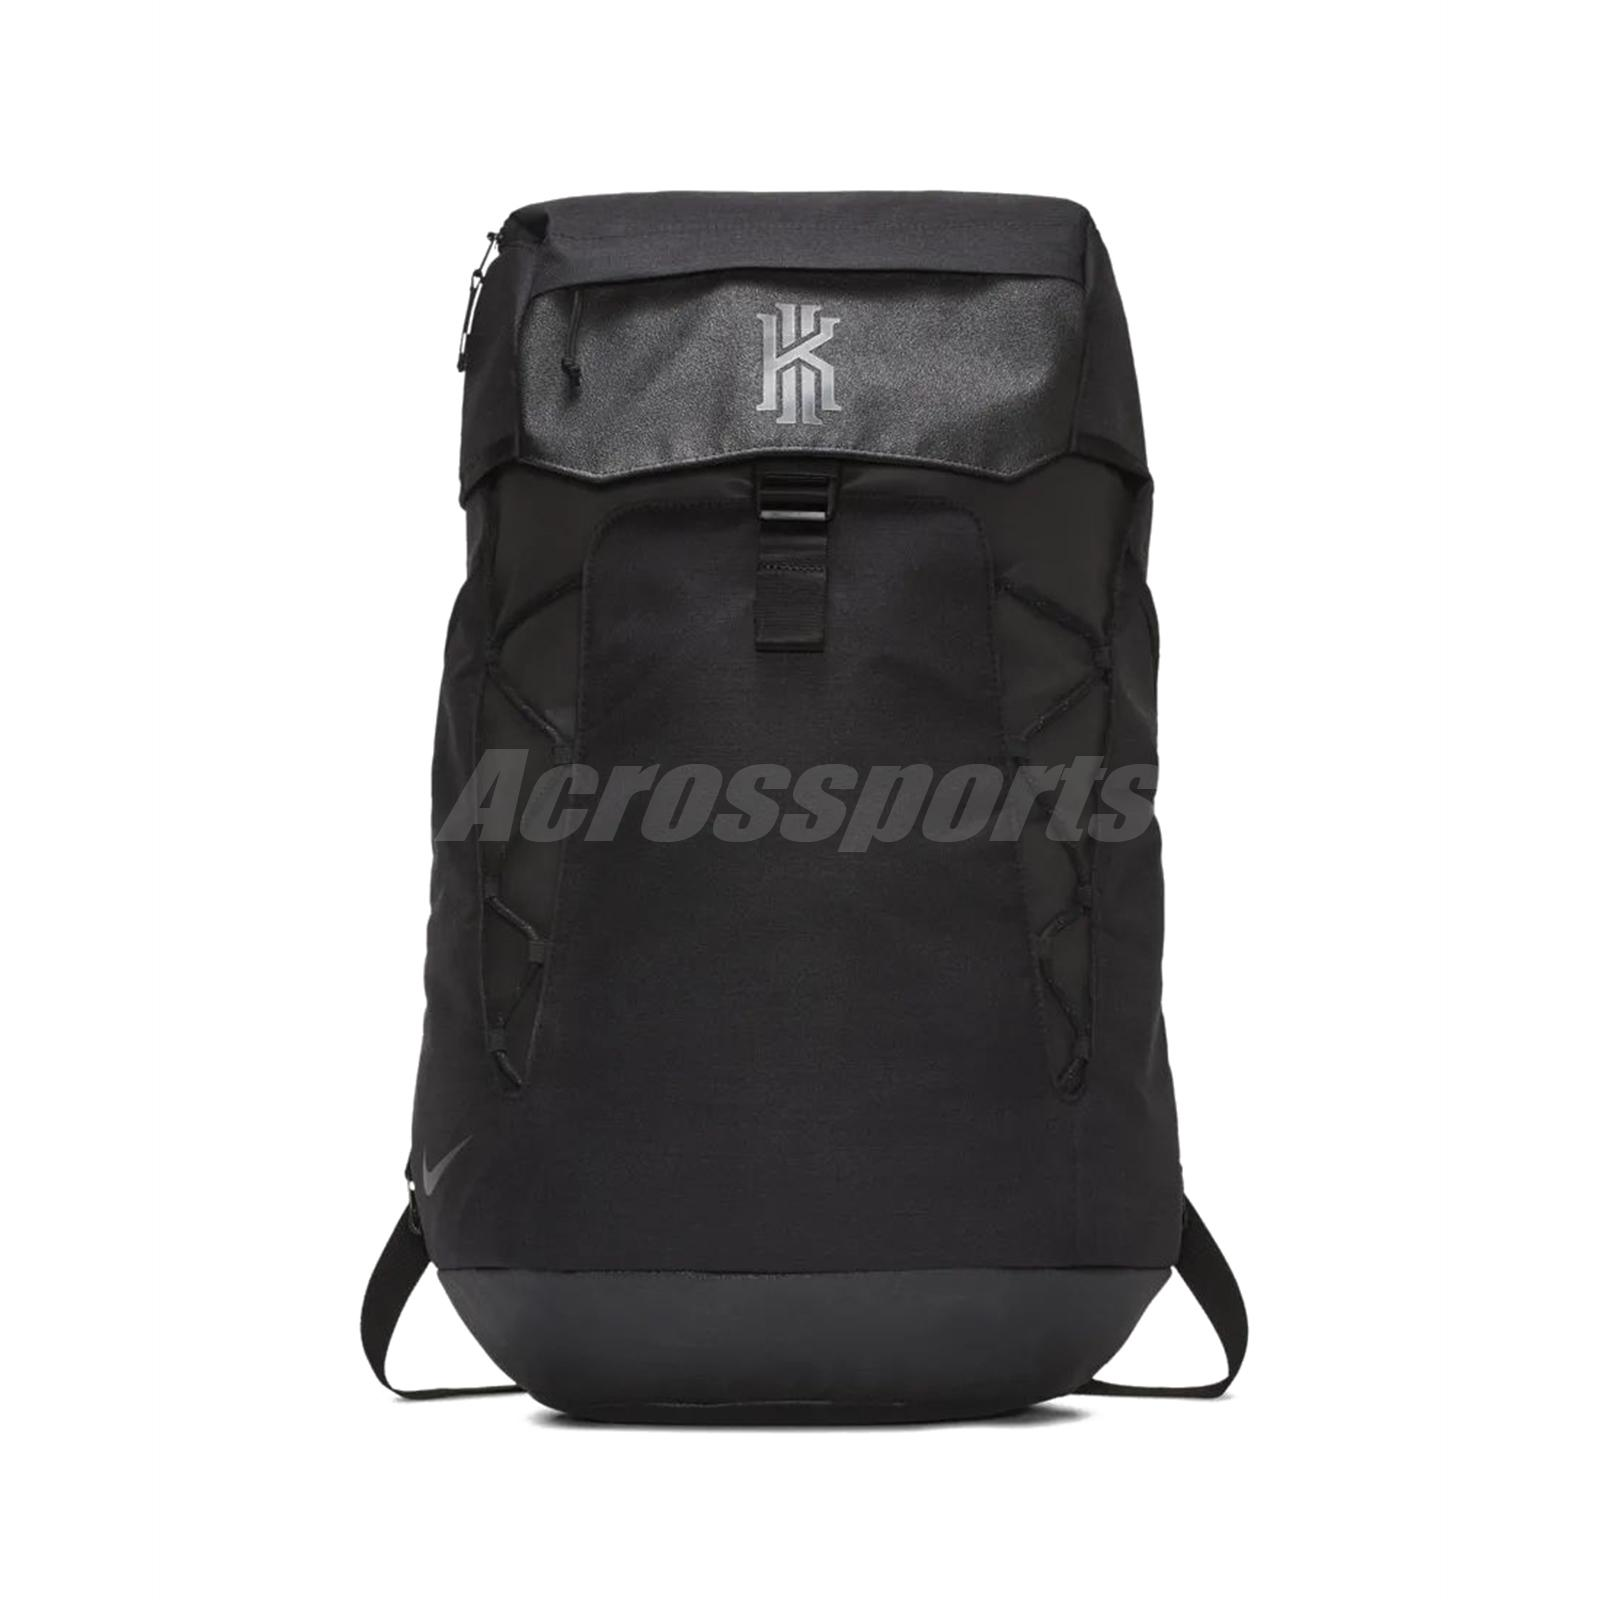 79224d72e721 Nike Kyrie Irving Backpack Bookbag Daypack Black Basketball Bag 37L  BA5788-010